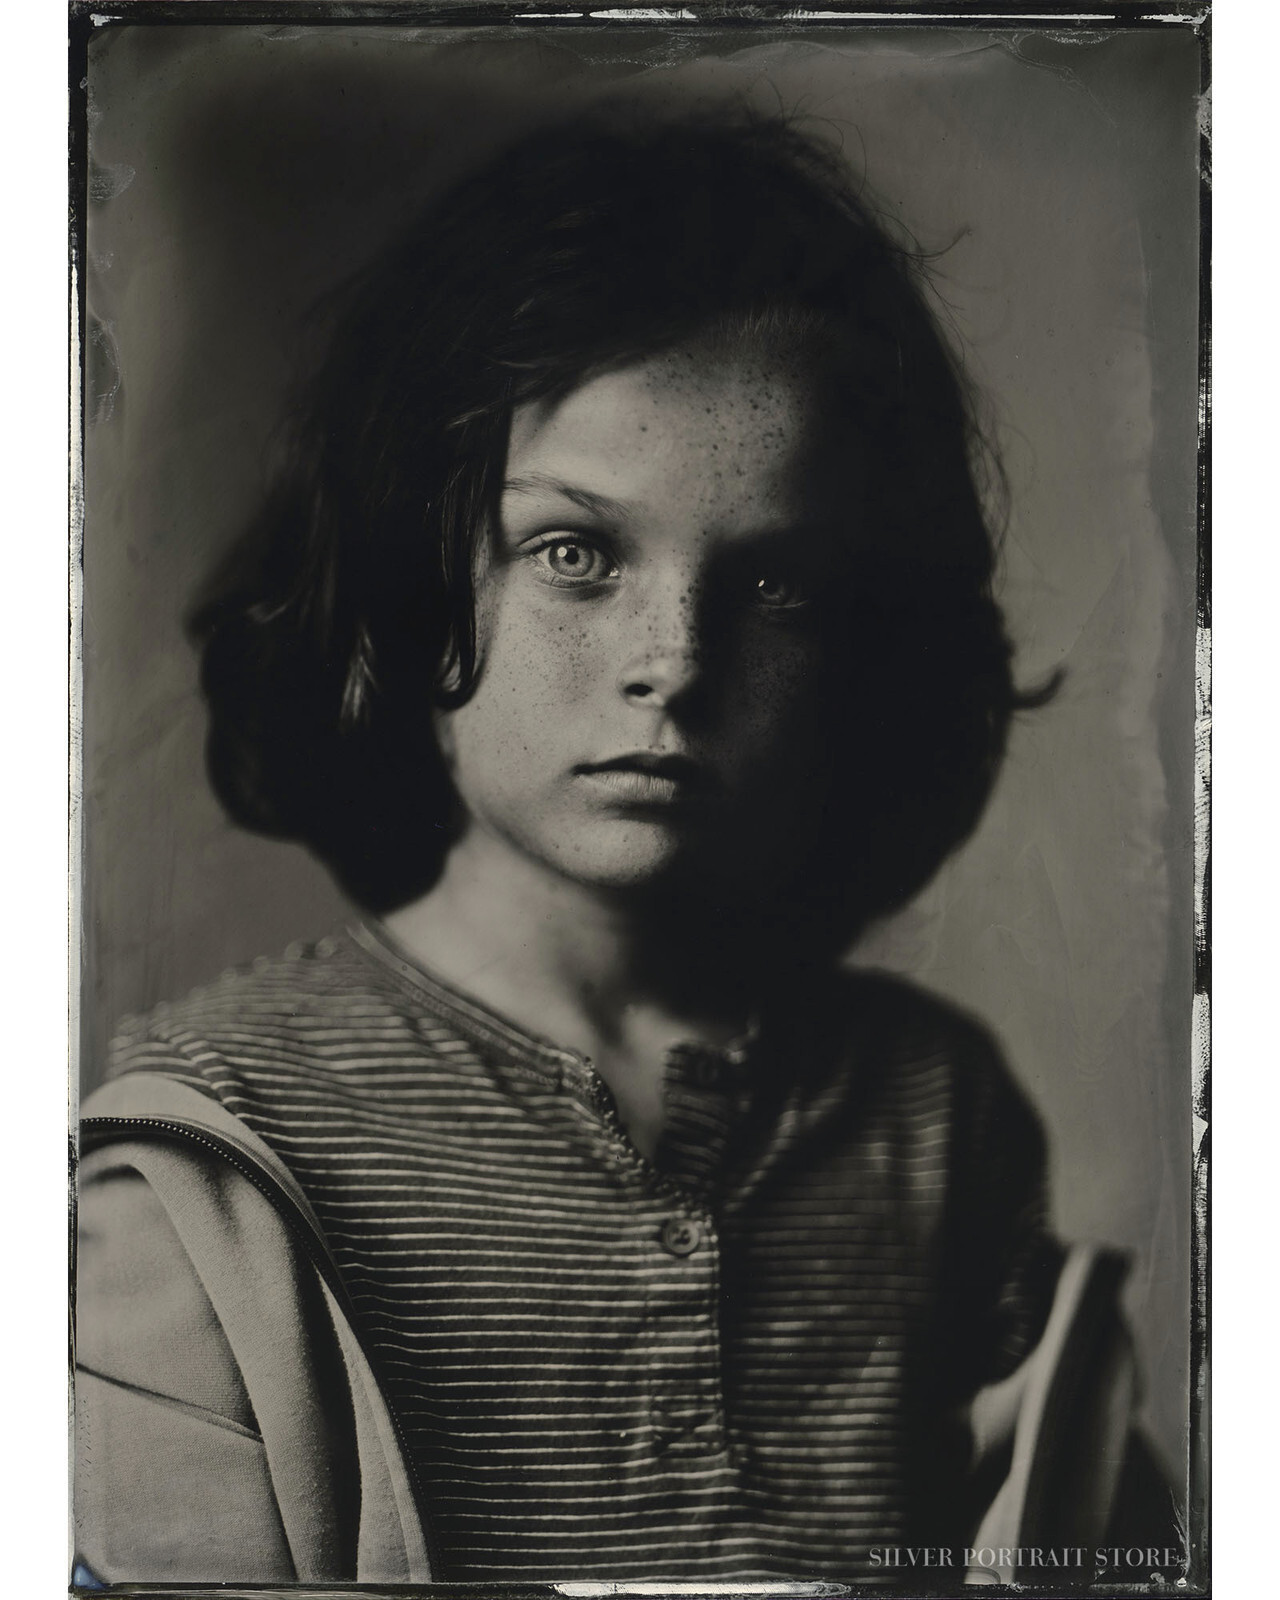 Mika-Silver Portrait Store-Wet plate collodion-Tintype 13 x 18 cm.